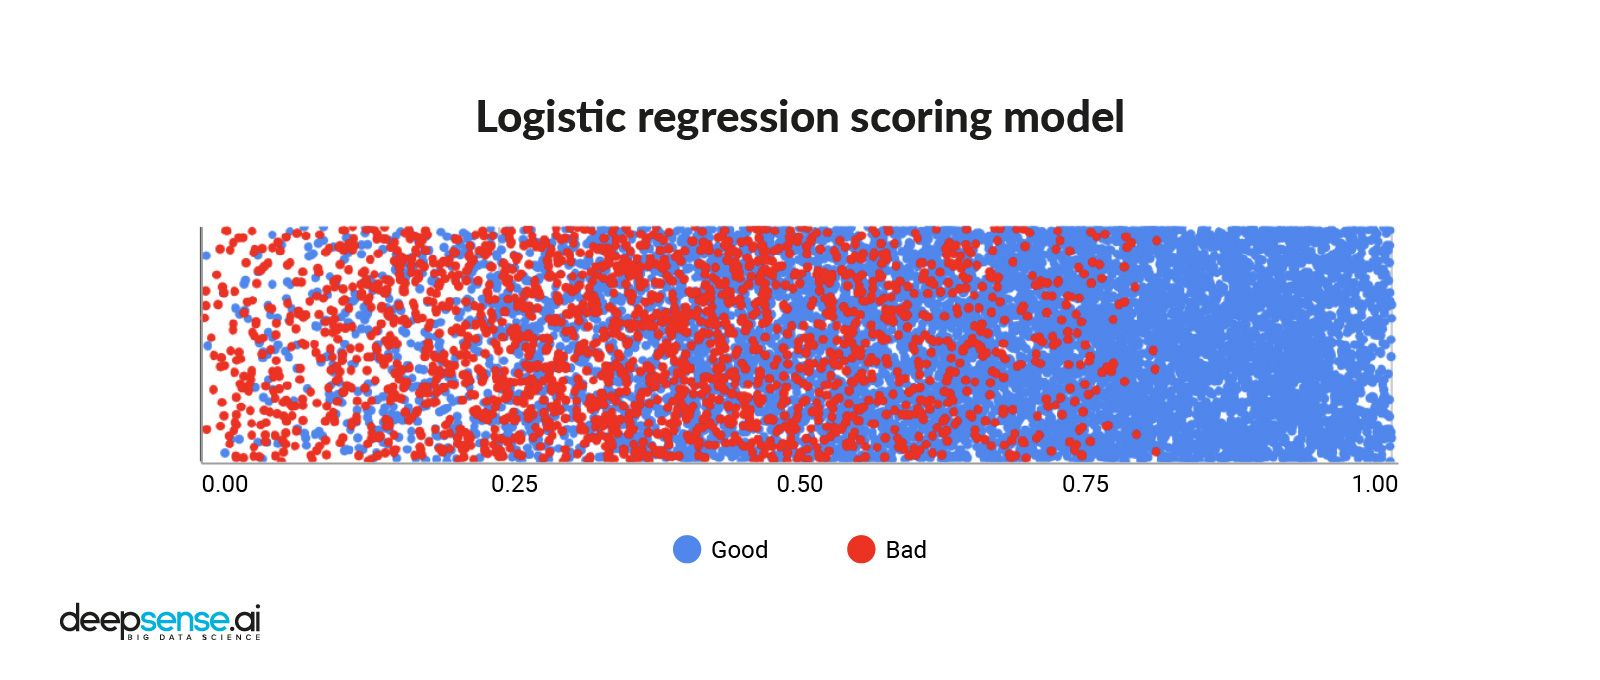 Credit scoring from a logistic regression model